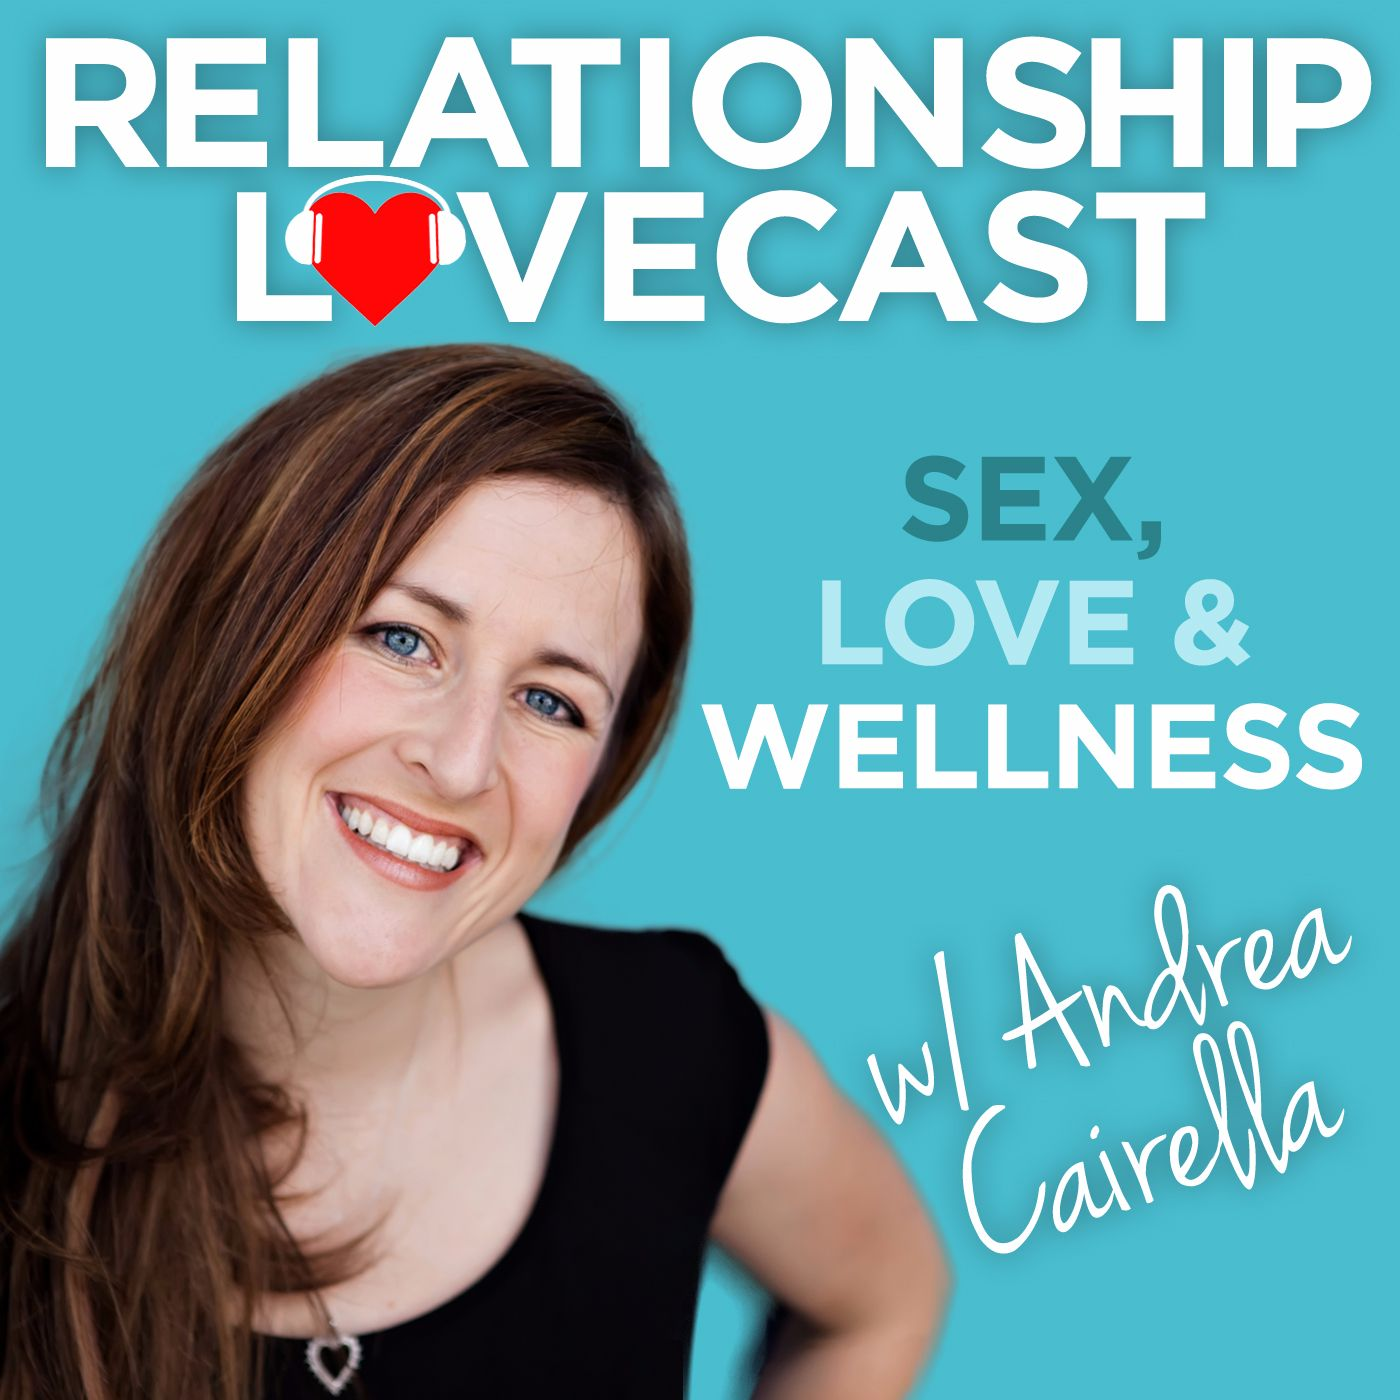 Relationship Lovecast Radio